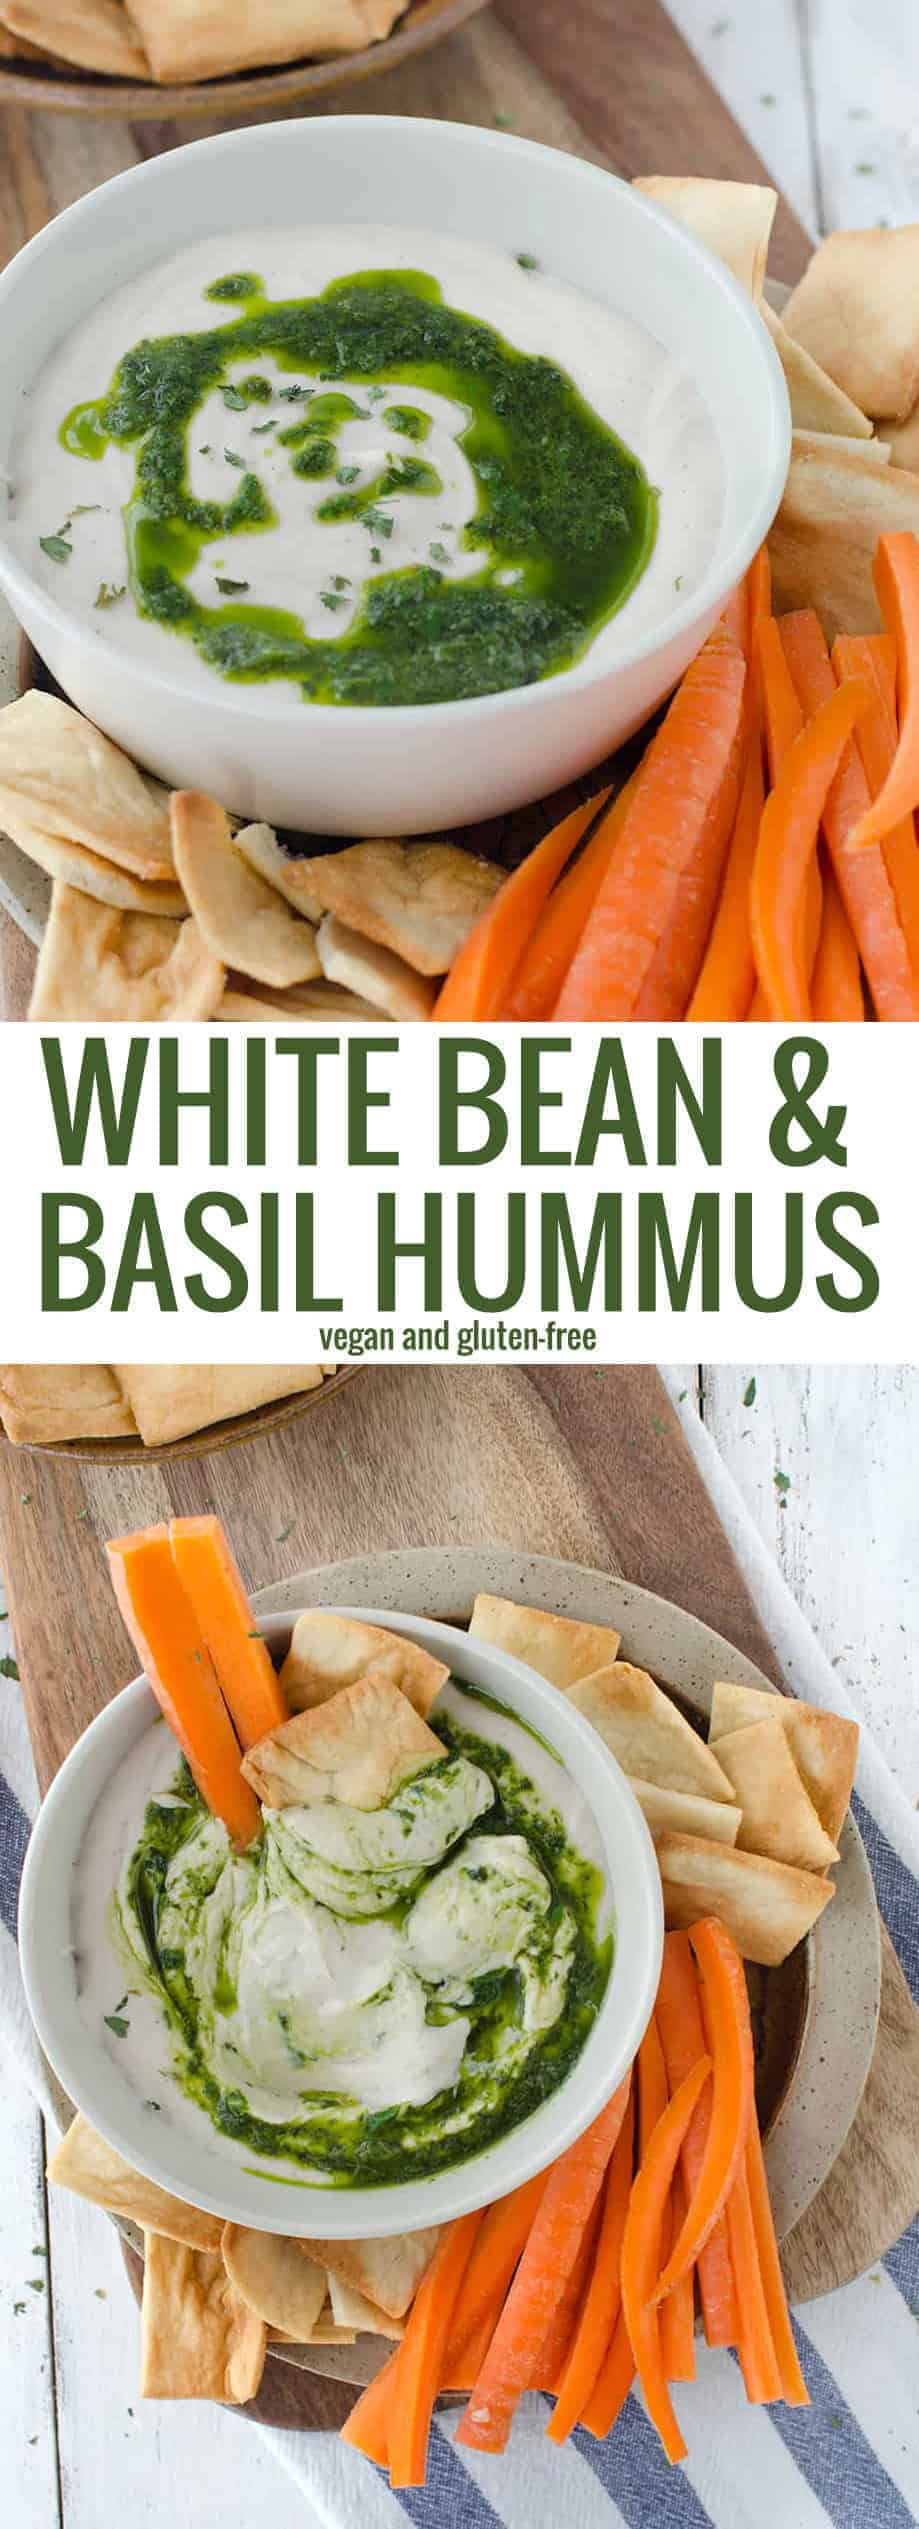 white bean and basil hummus